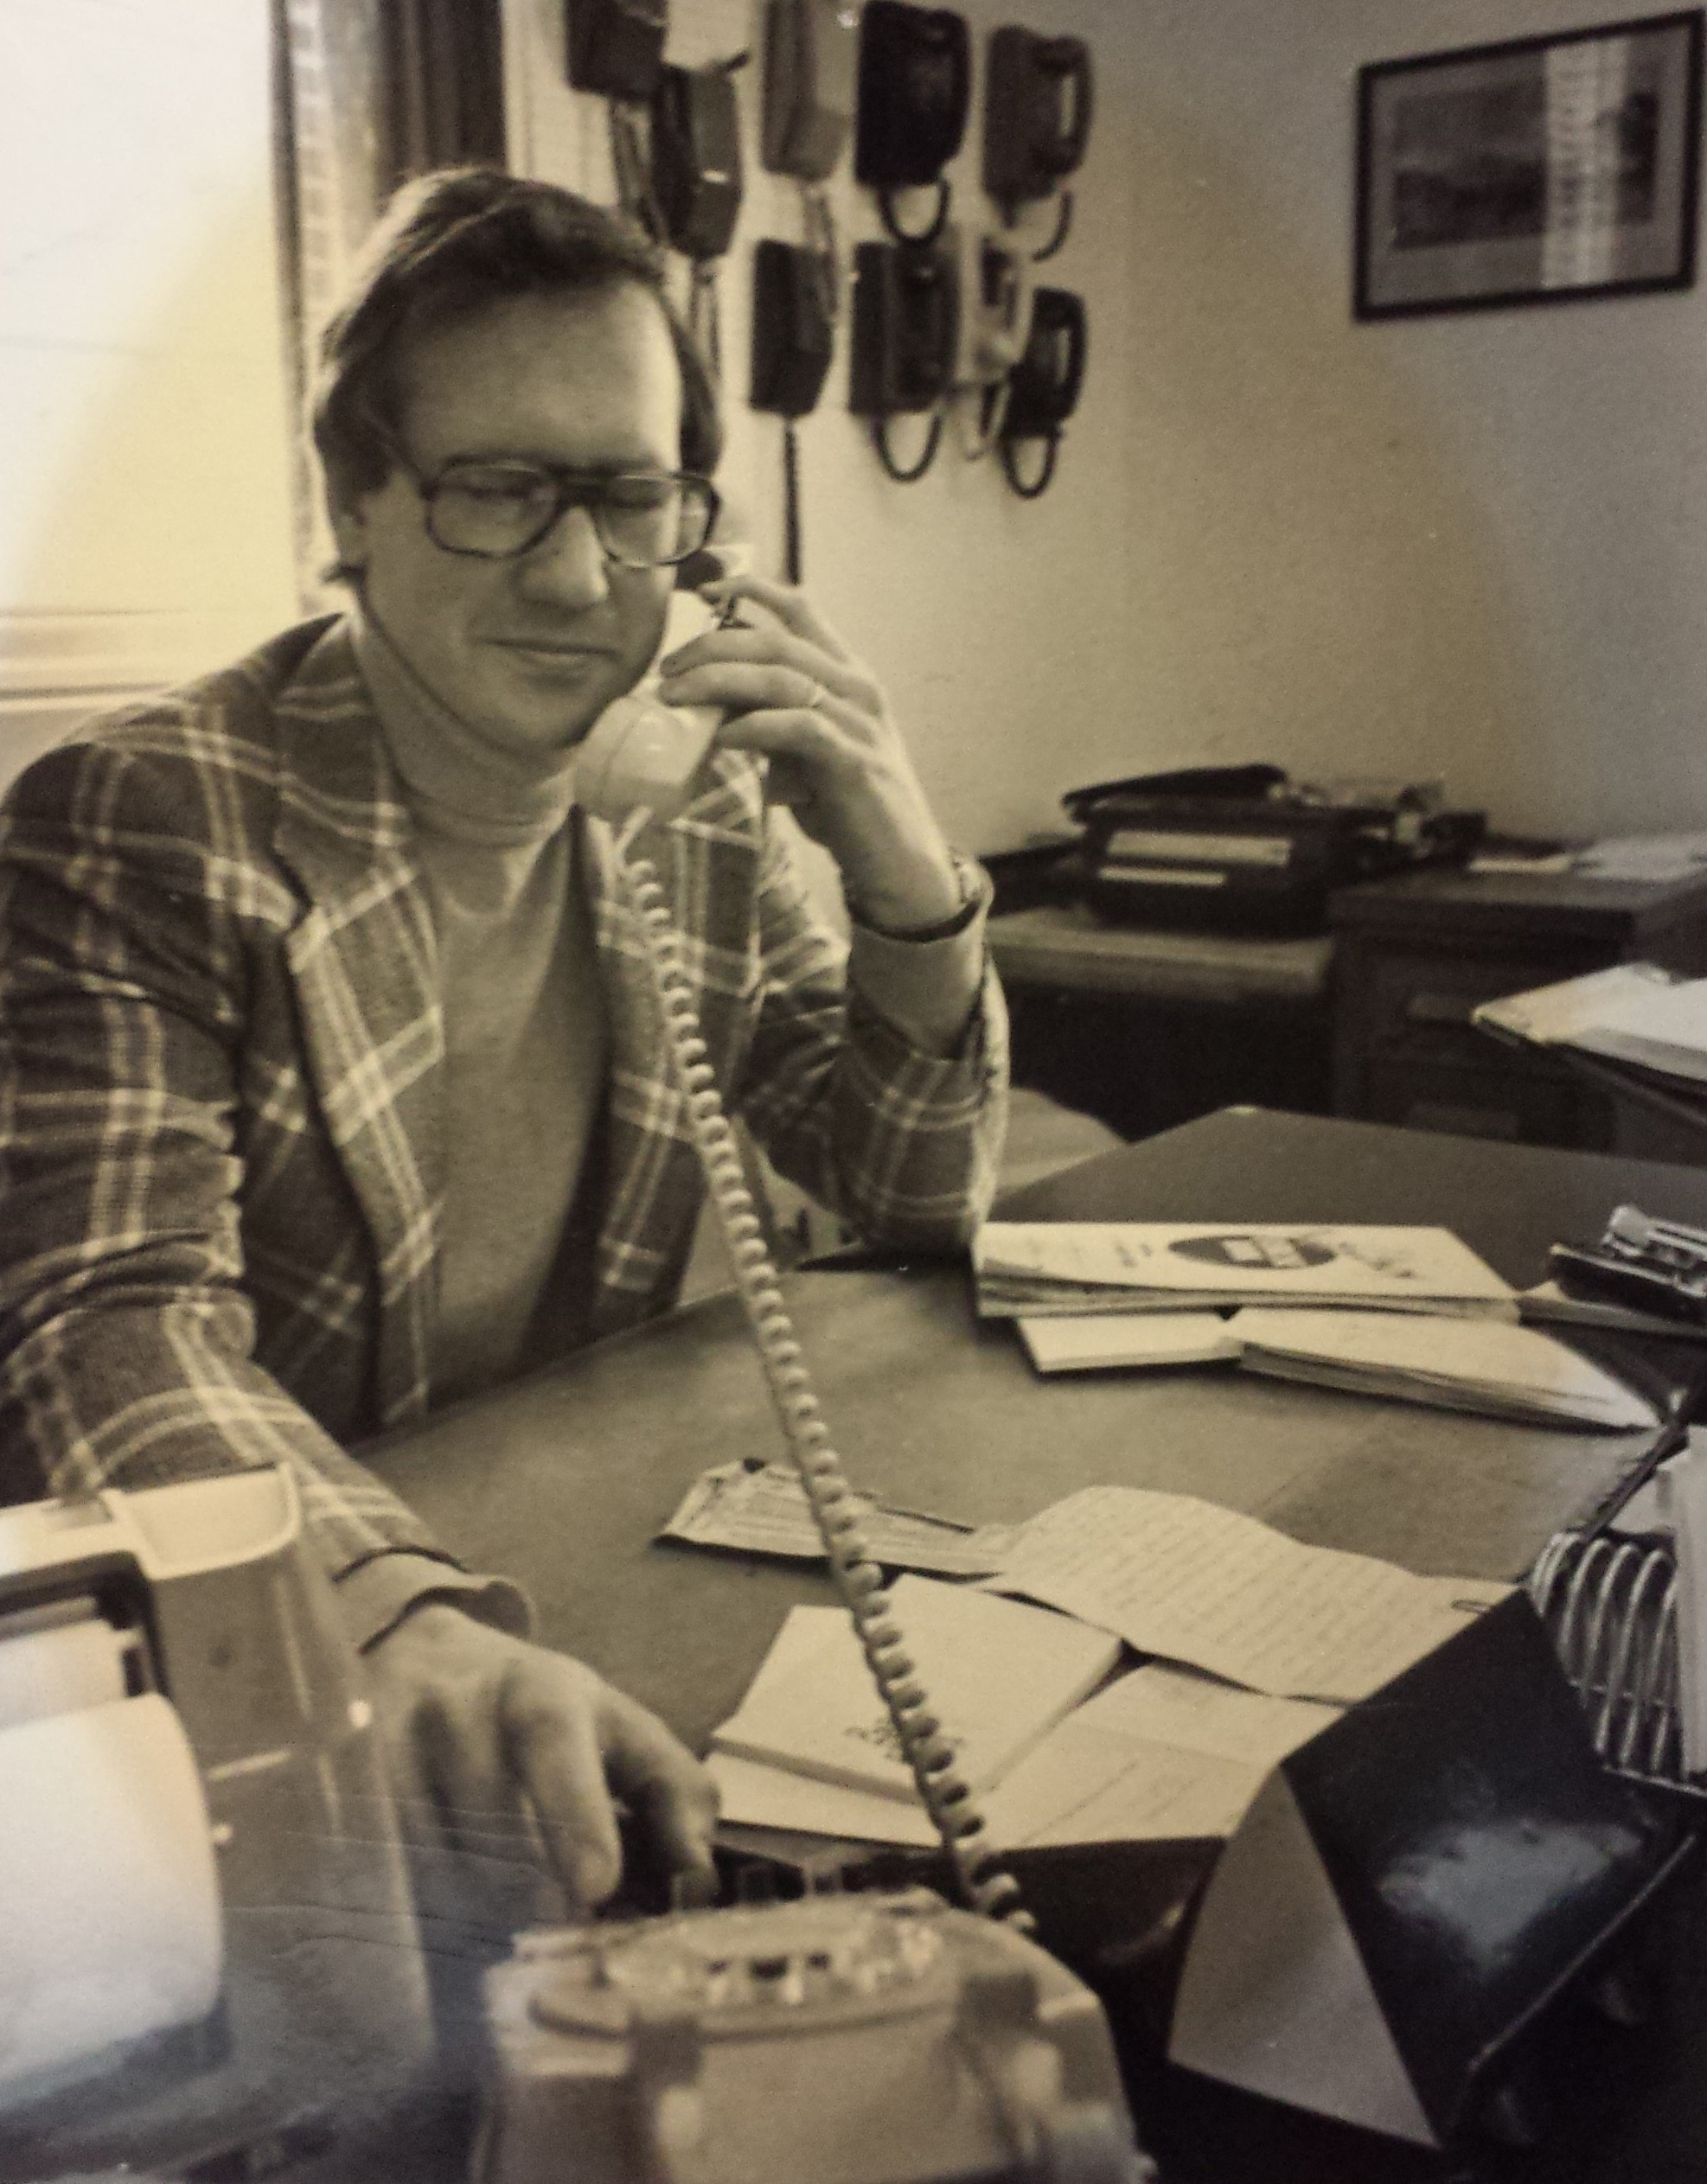 Keith Stevens on a phone call in the Thedford office.